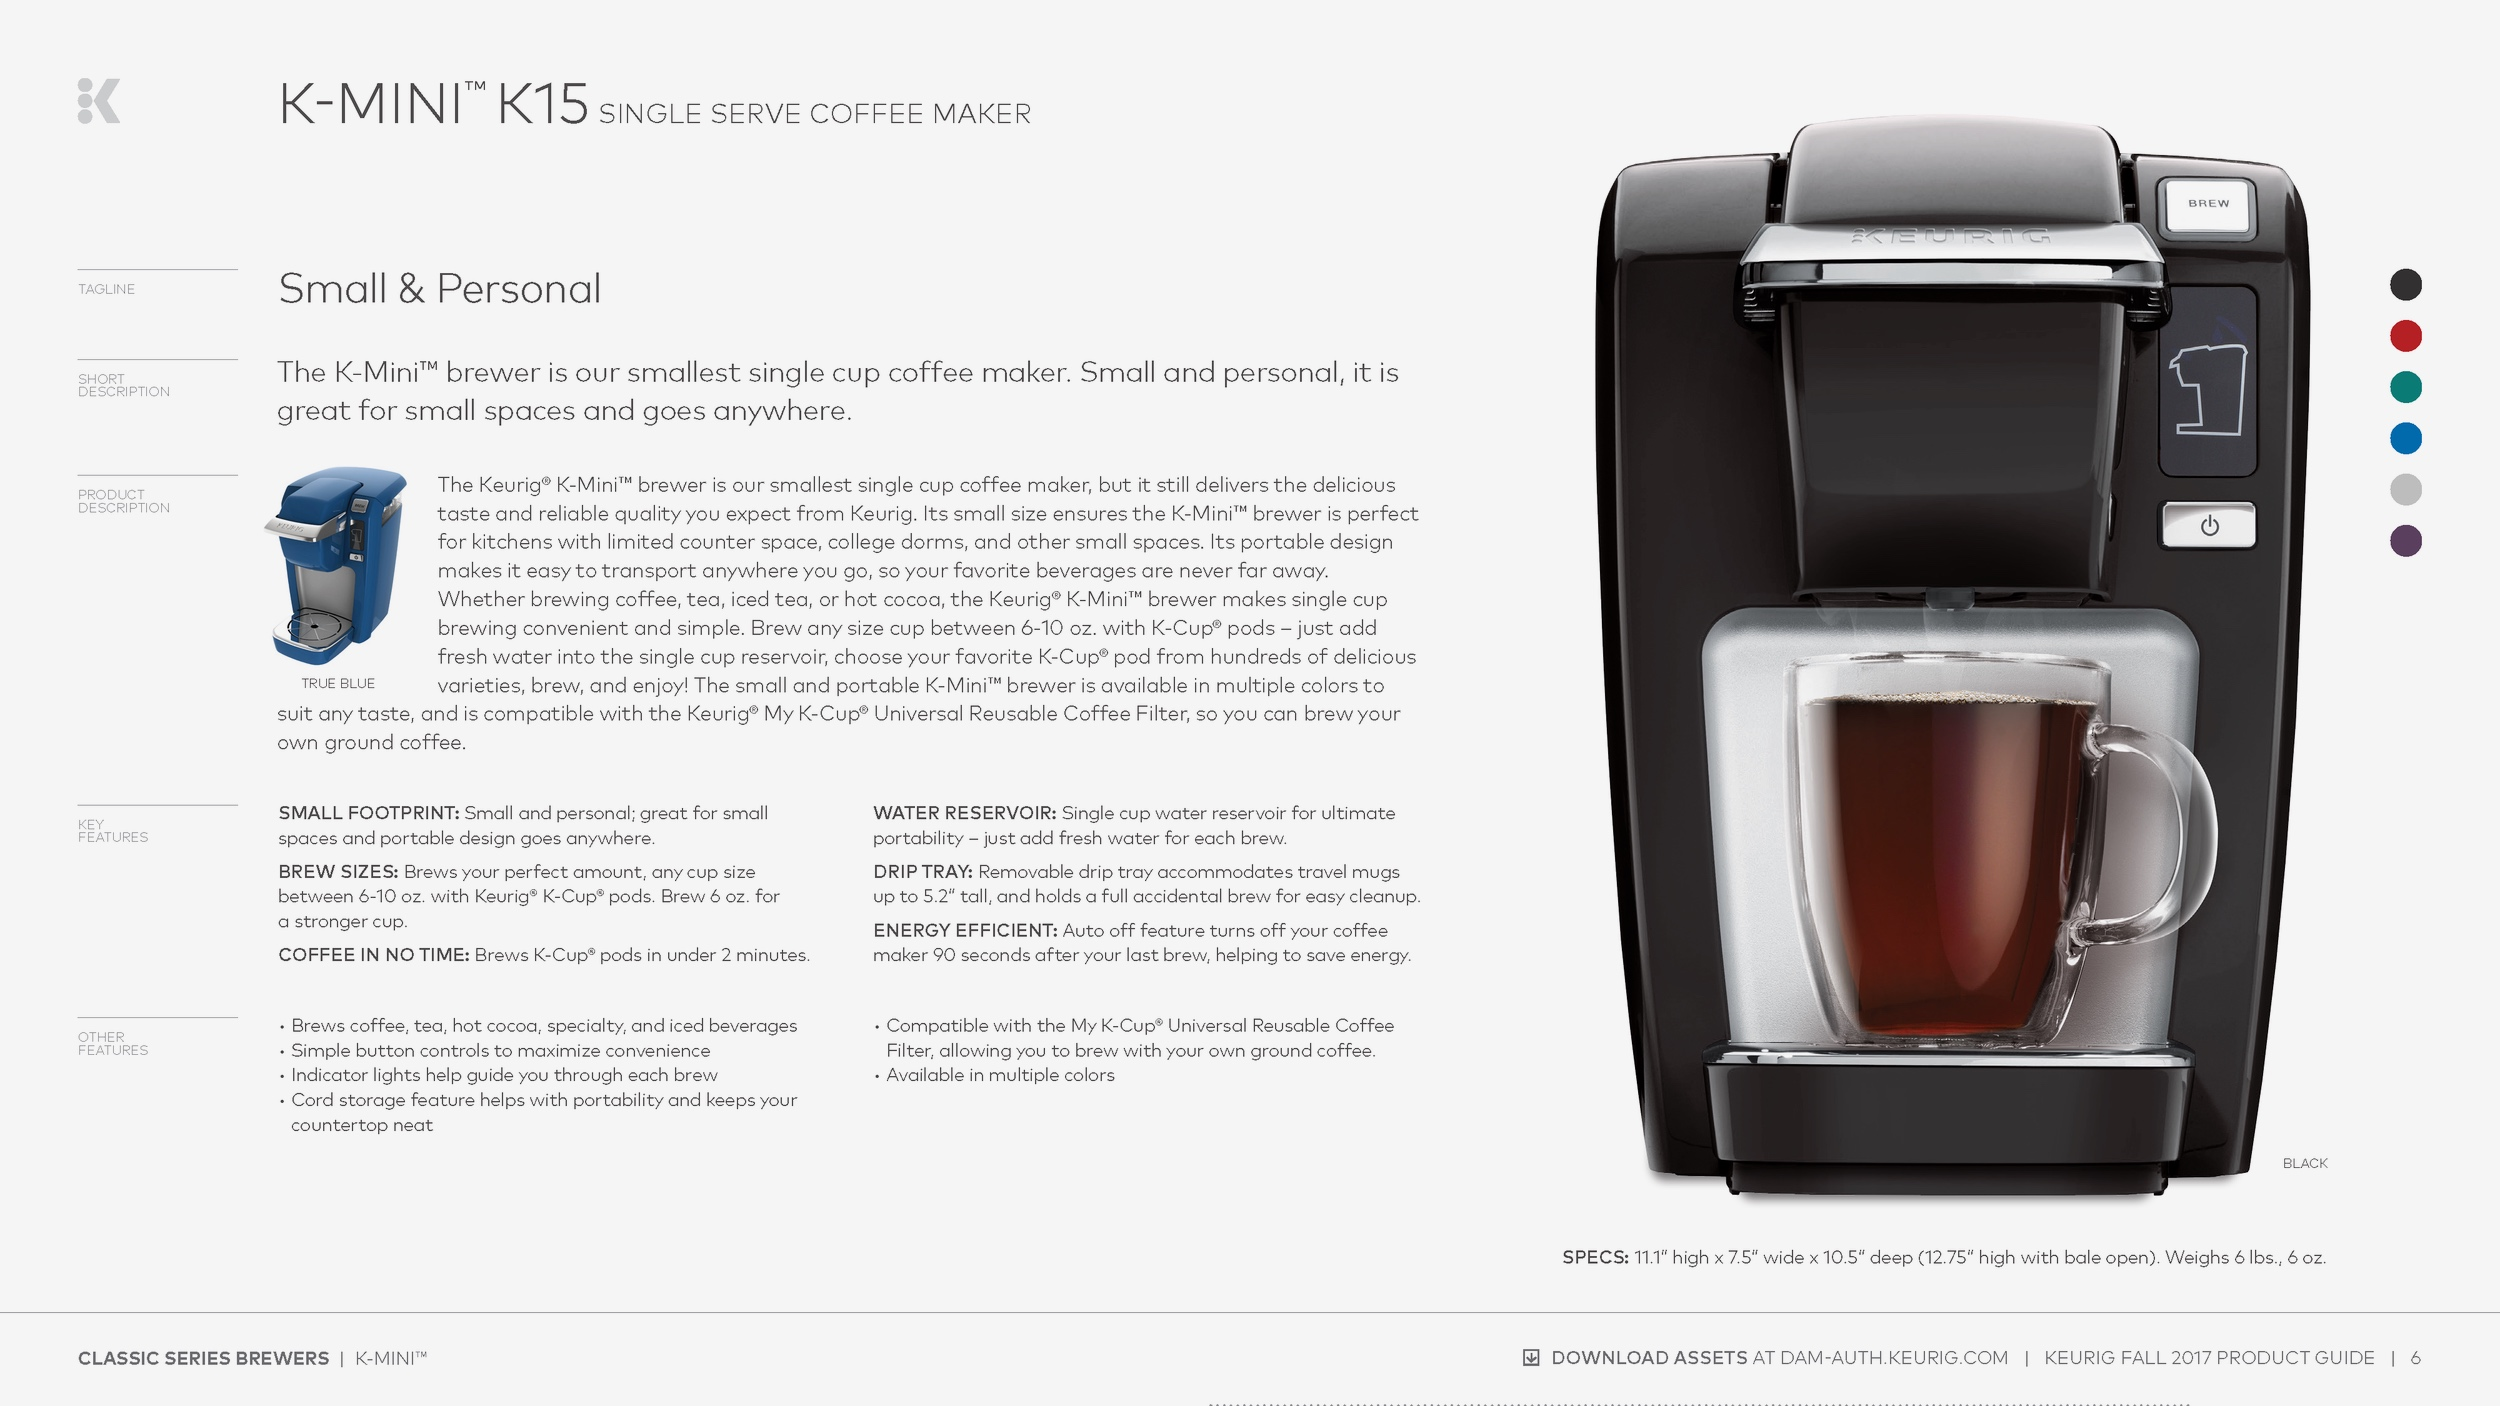 keurig_product_guide_F17_R8_Page_06.png